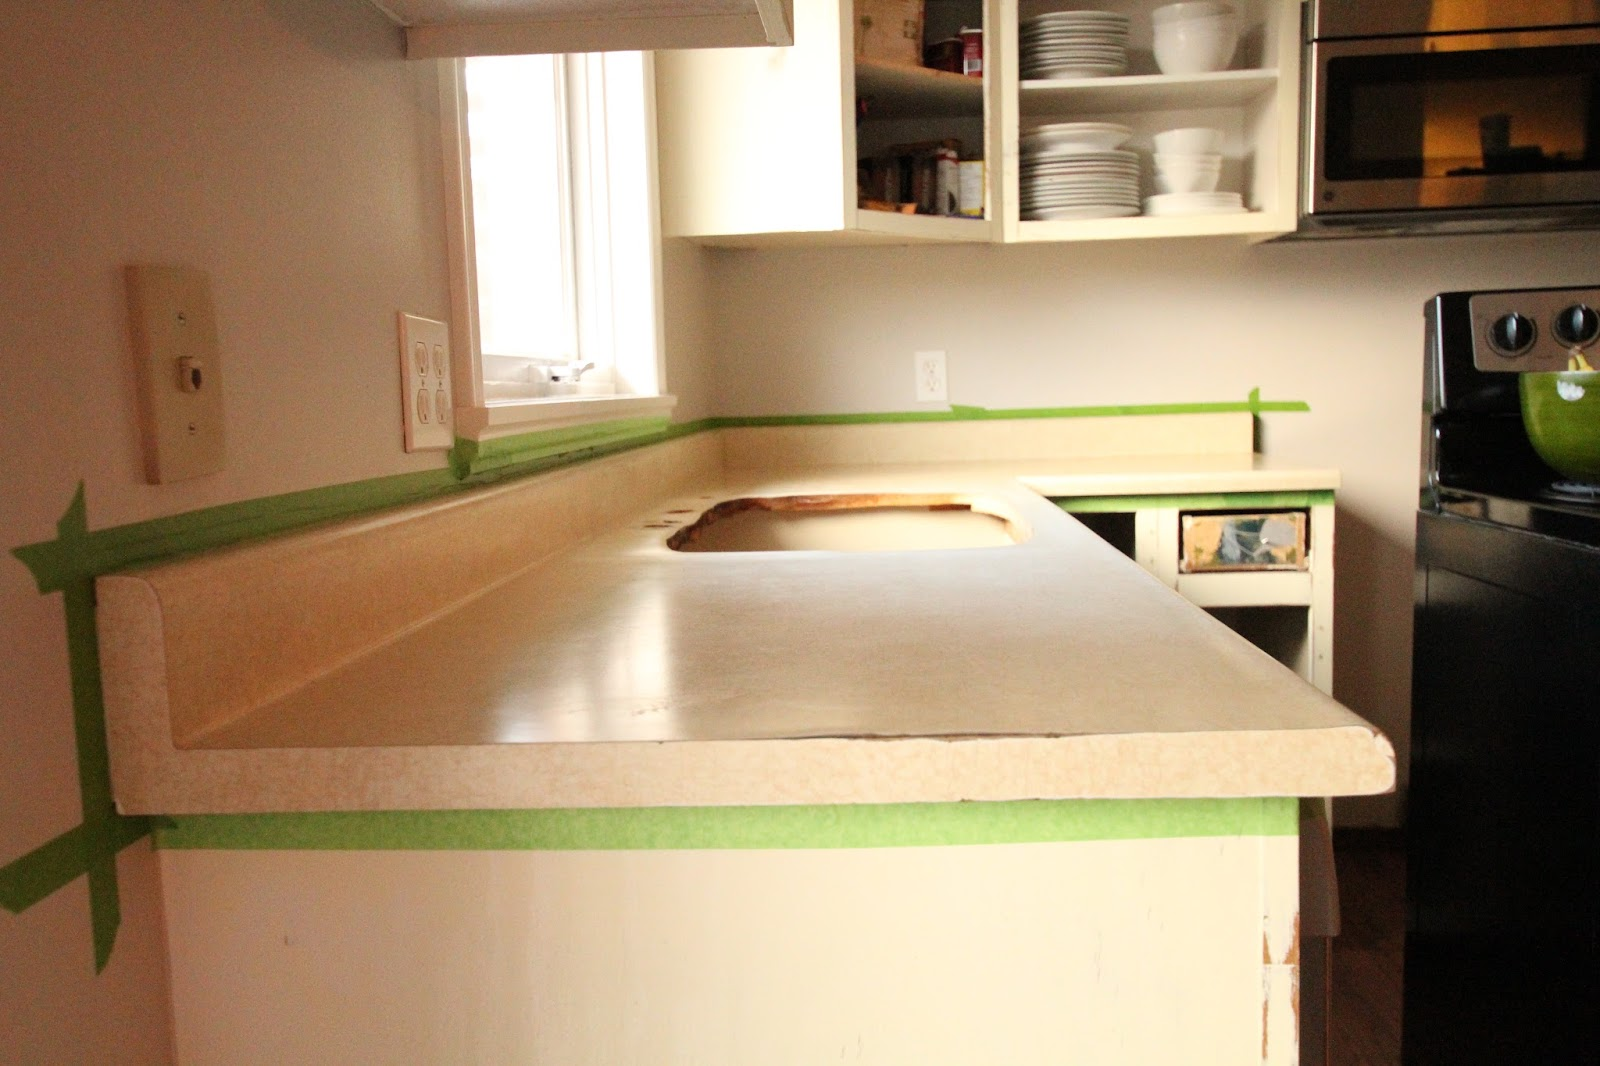 How to get beeswax off a counter top or table surface 5 steps - Use Painter S Tape To Mask Off All The Edges Of The Counter Tops Use Plastic Sheeting To Protect Cabinets And Appliances And Drop Cloths To Protect Your